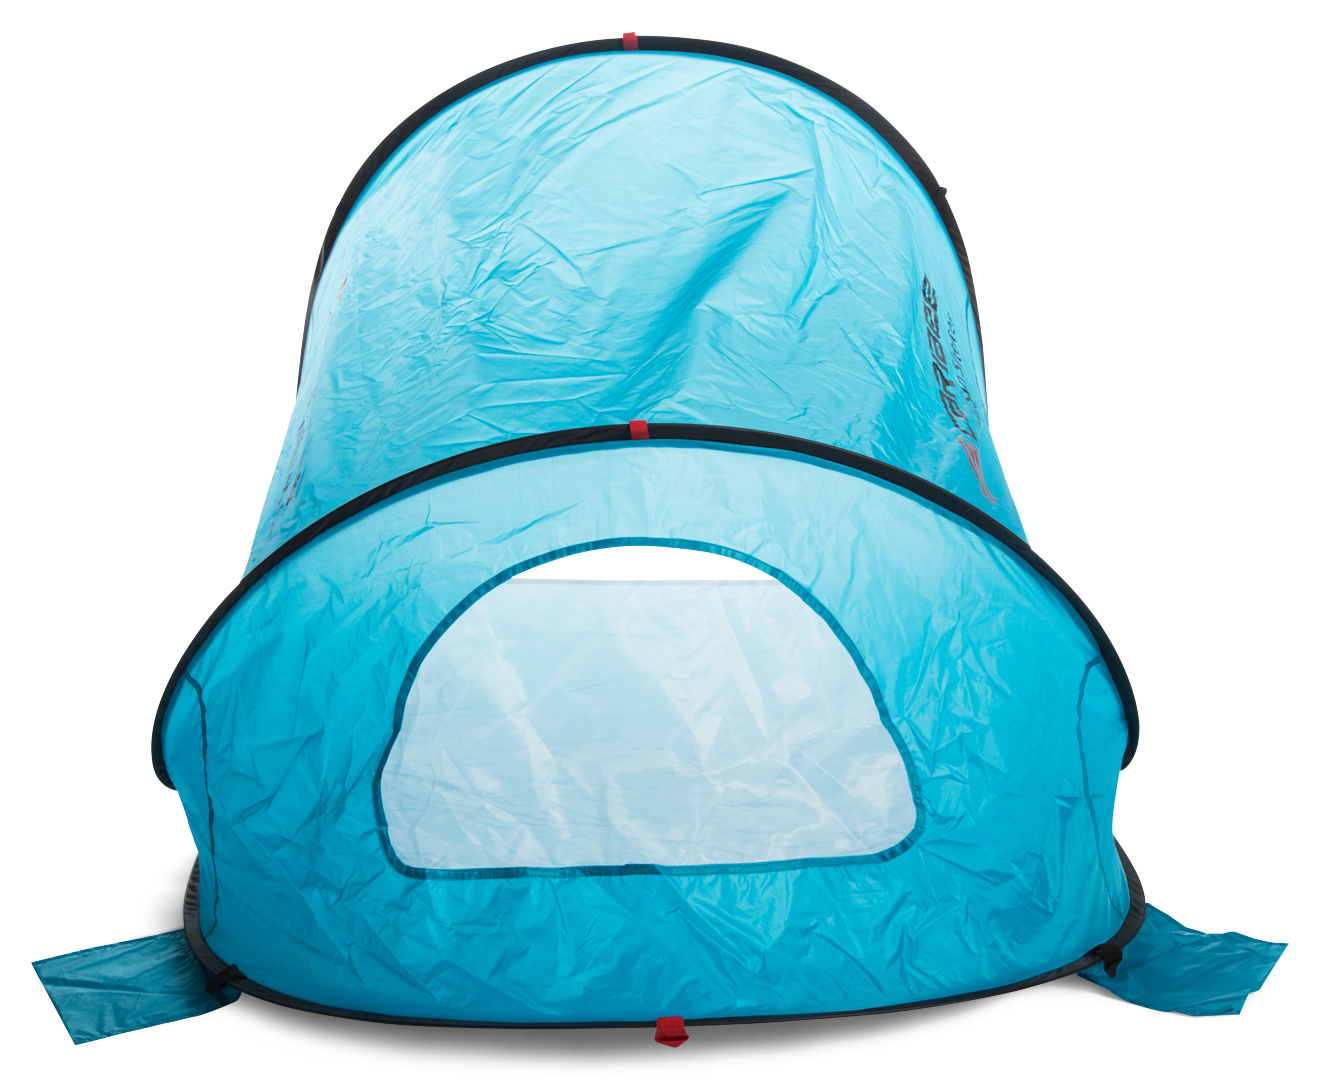 Caribee Rapid Beach Sun Shelter - Blue | Great daily deals at Australiau0027s favourite superstore | Catch.com.au  sc 1 st  Catch & Caribee Rapid Beach Sun Shelter - Blue | Great daily deals at ...